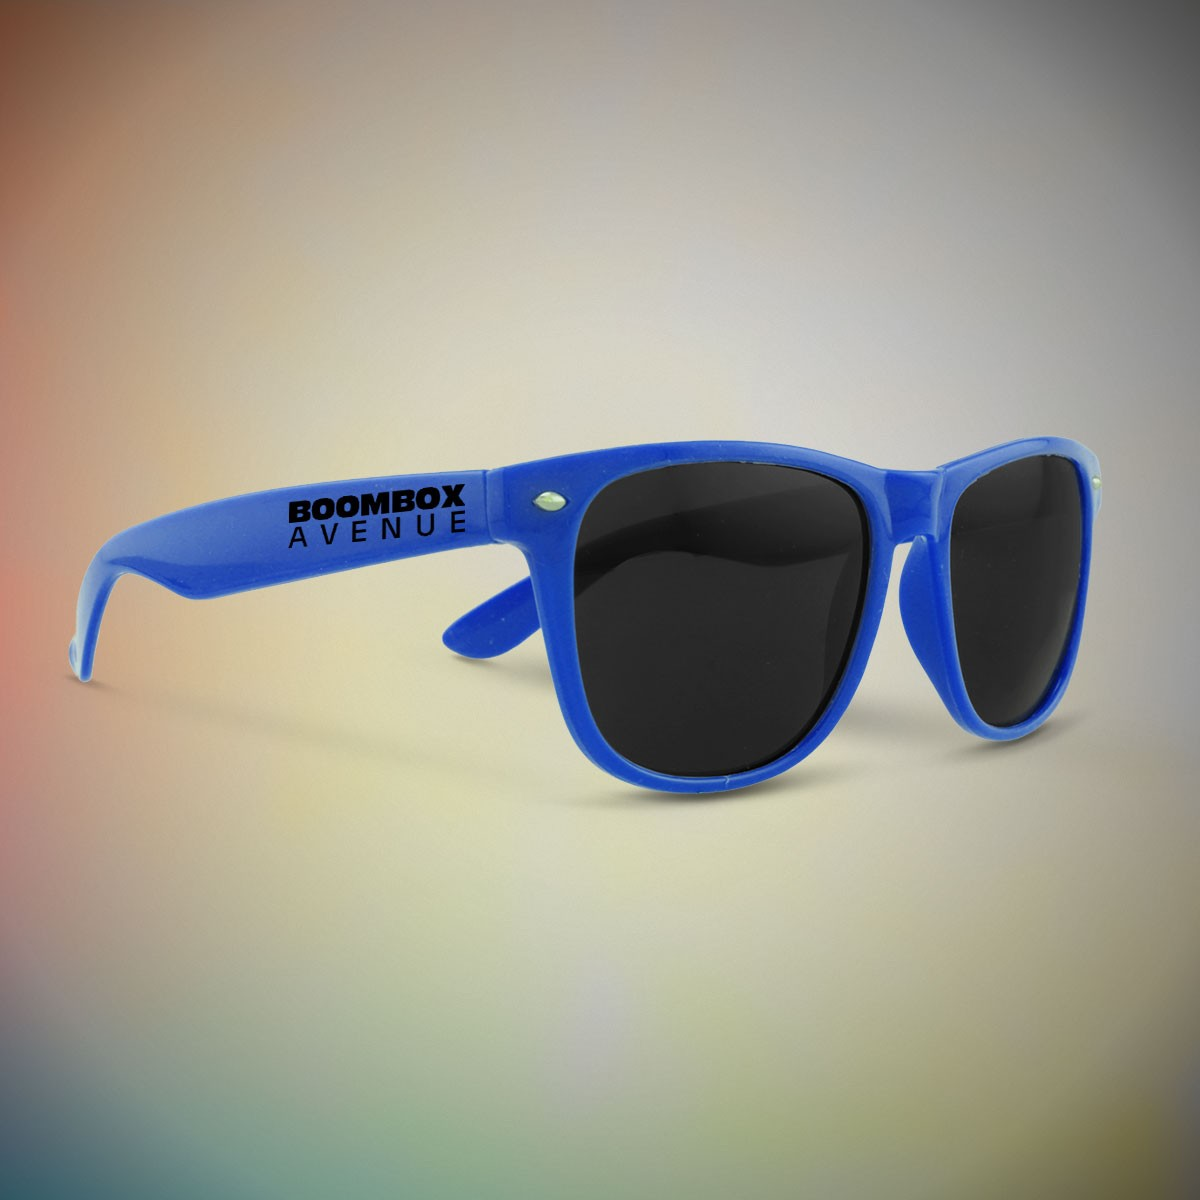 BLUE FRAME RETRO SUNGLASSES